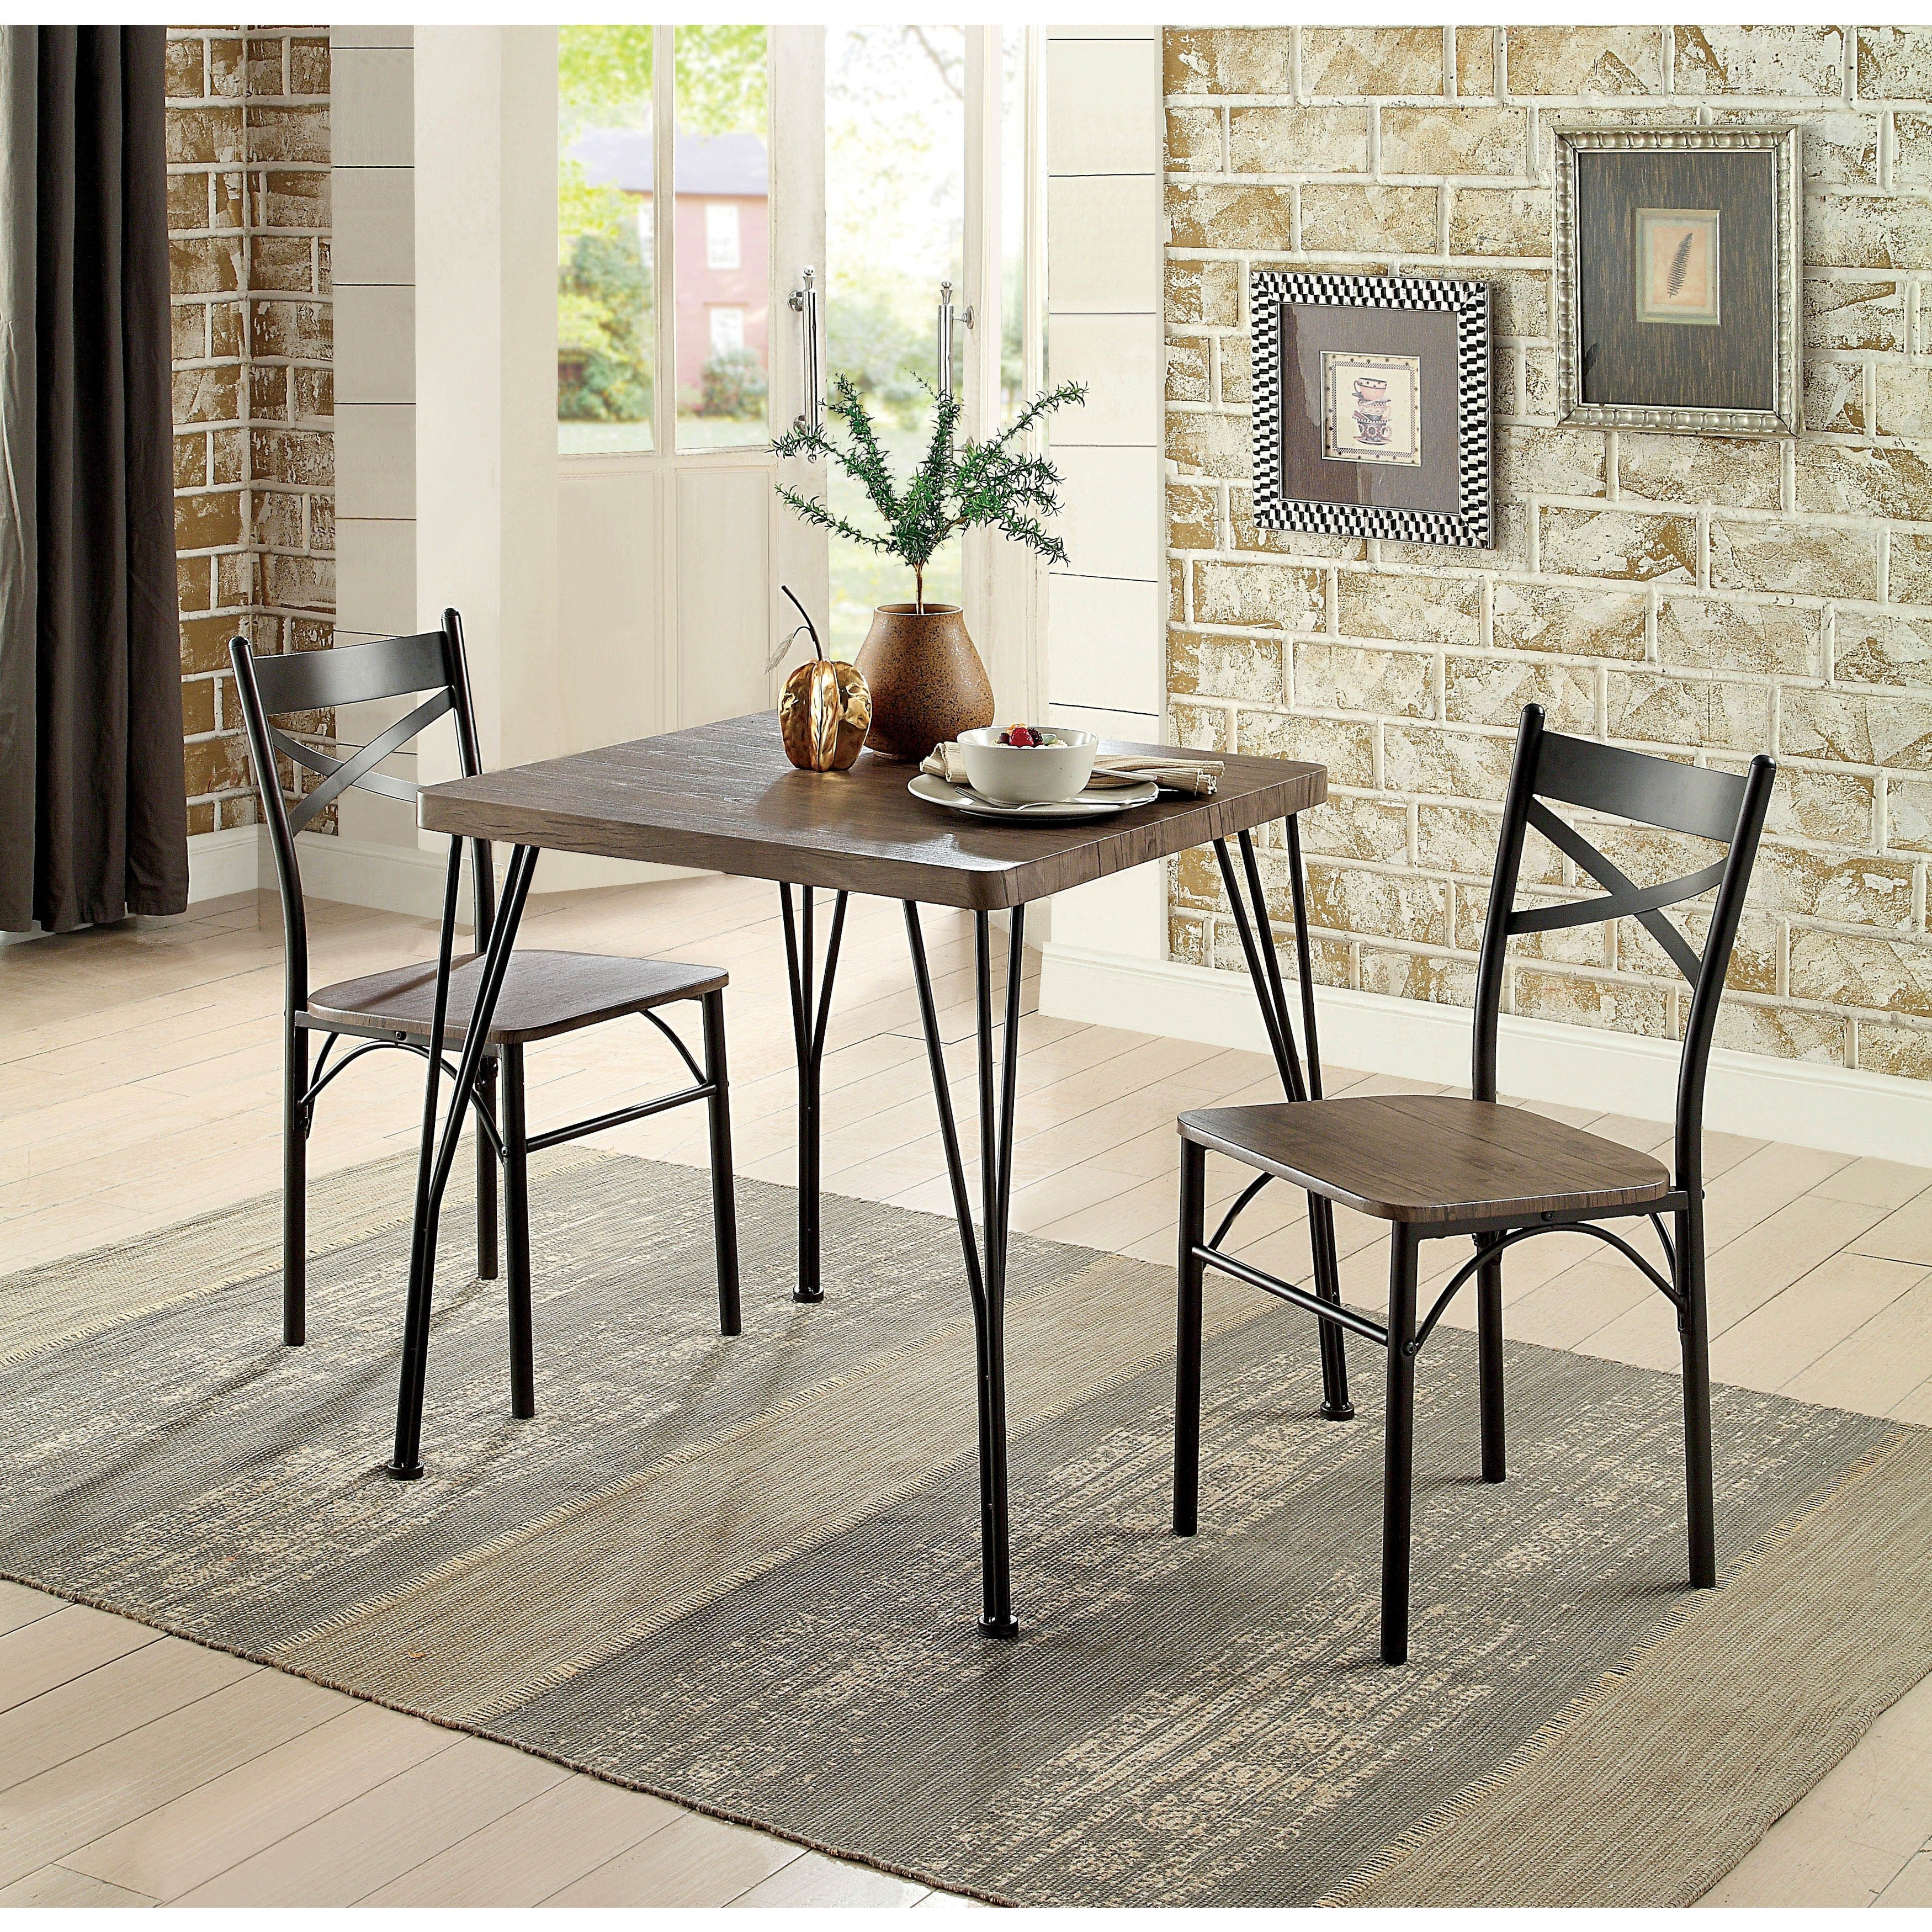 Buy 3 Piece Sets Kitchen & Dining Room Sets Online At Overstock For 2017 Bedfo 3 Piece Dining Sets (View 10 of 20)